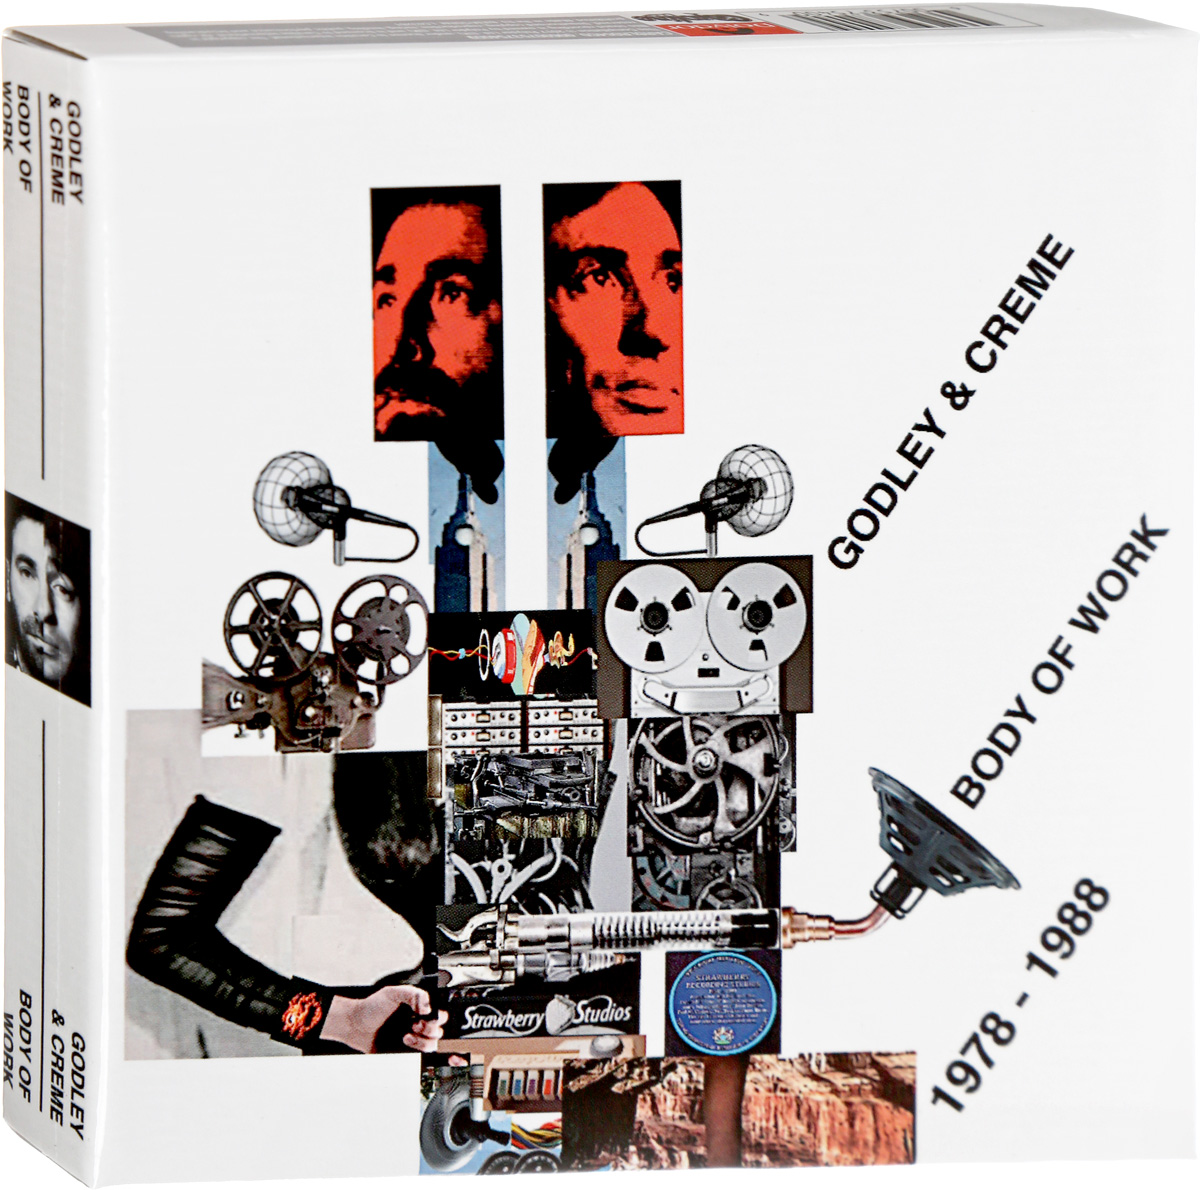 Godley & Creme Godley & Creme. Body of Work (5 CD) godley alfred denis aspects of modern oxford by a mere don